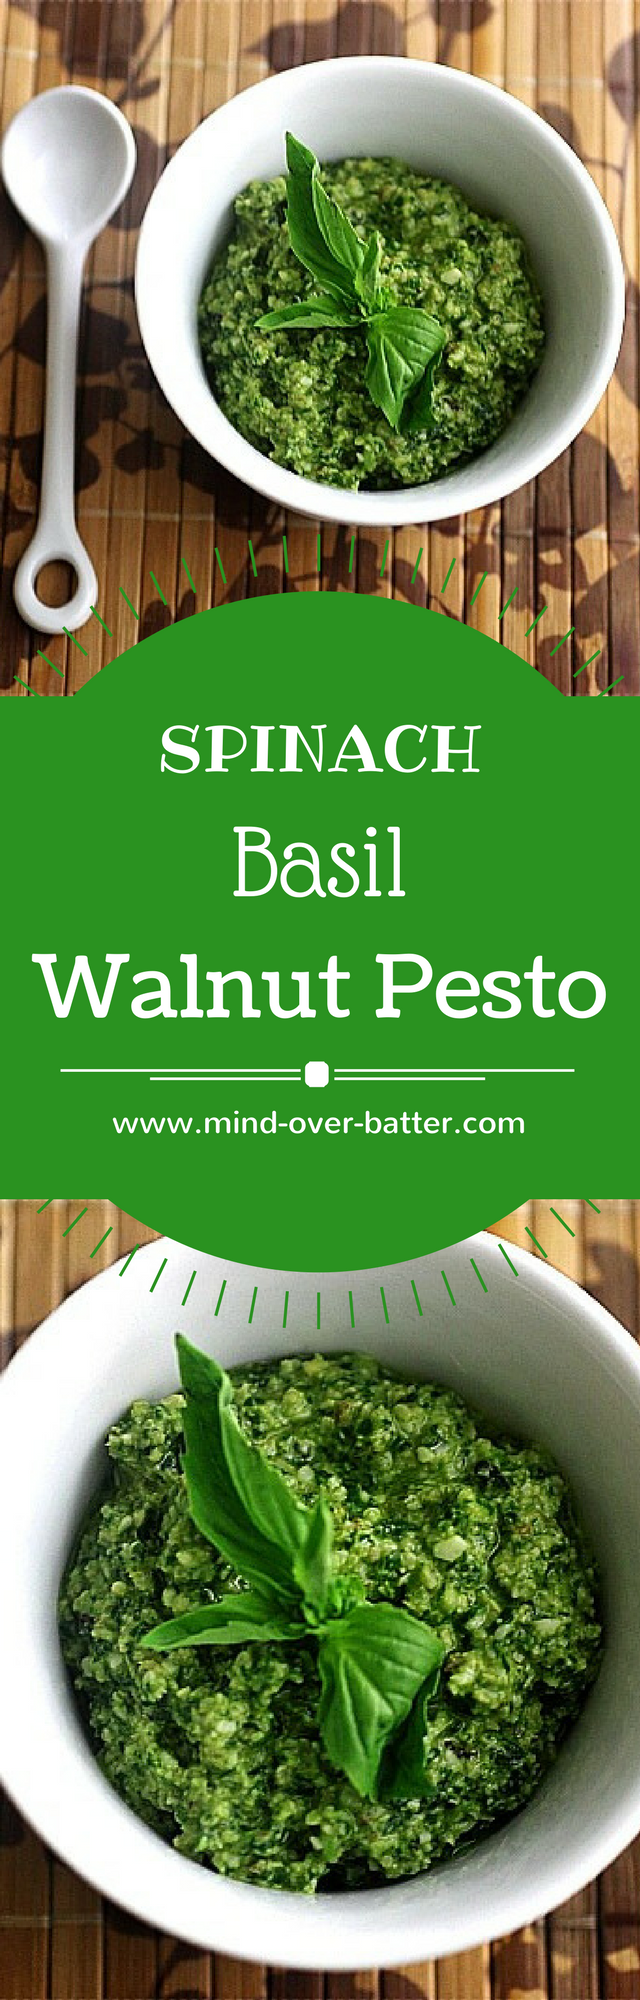 Spinach Basil Walnut Pesto -- www.mind-over-batter.com